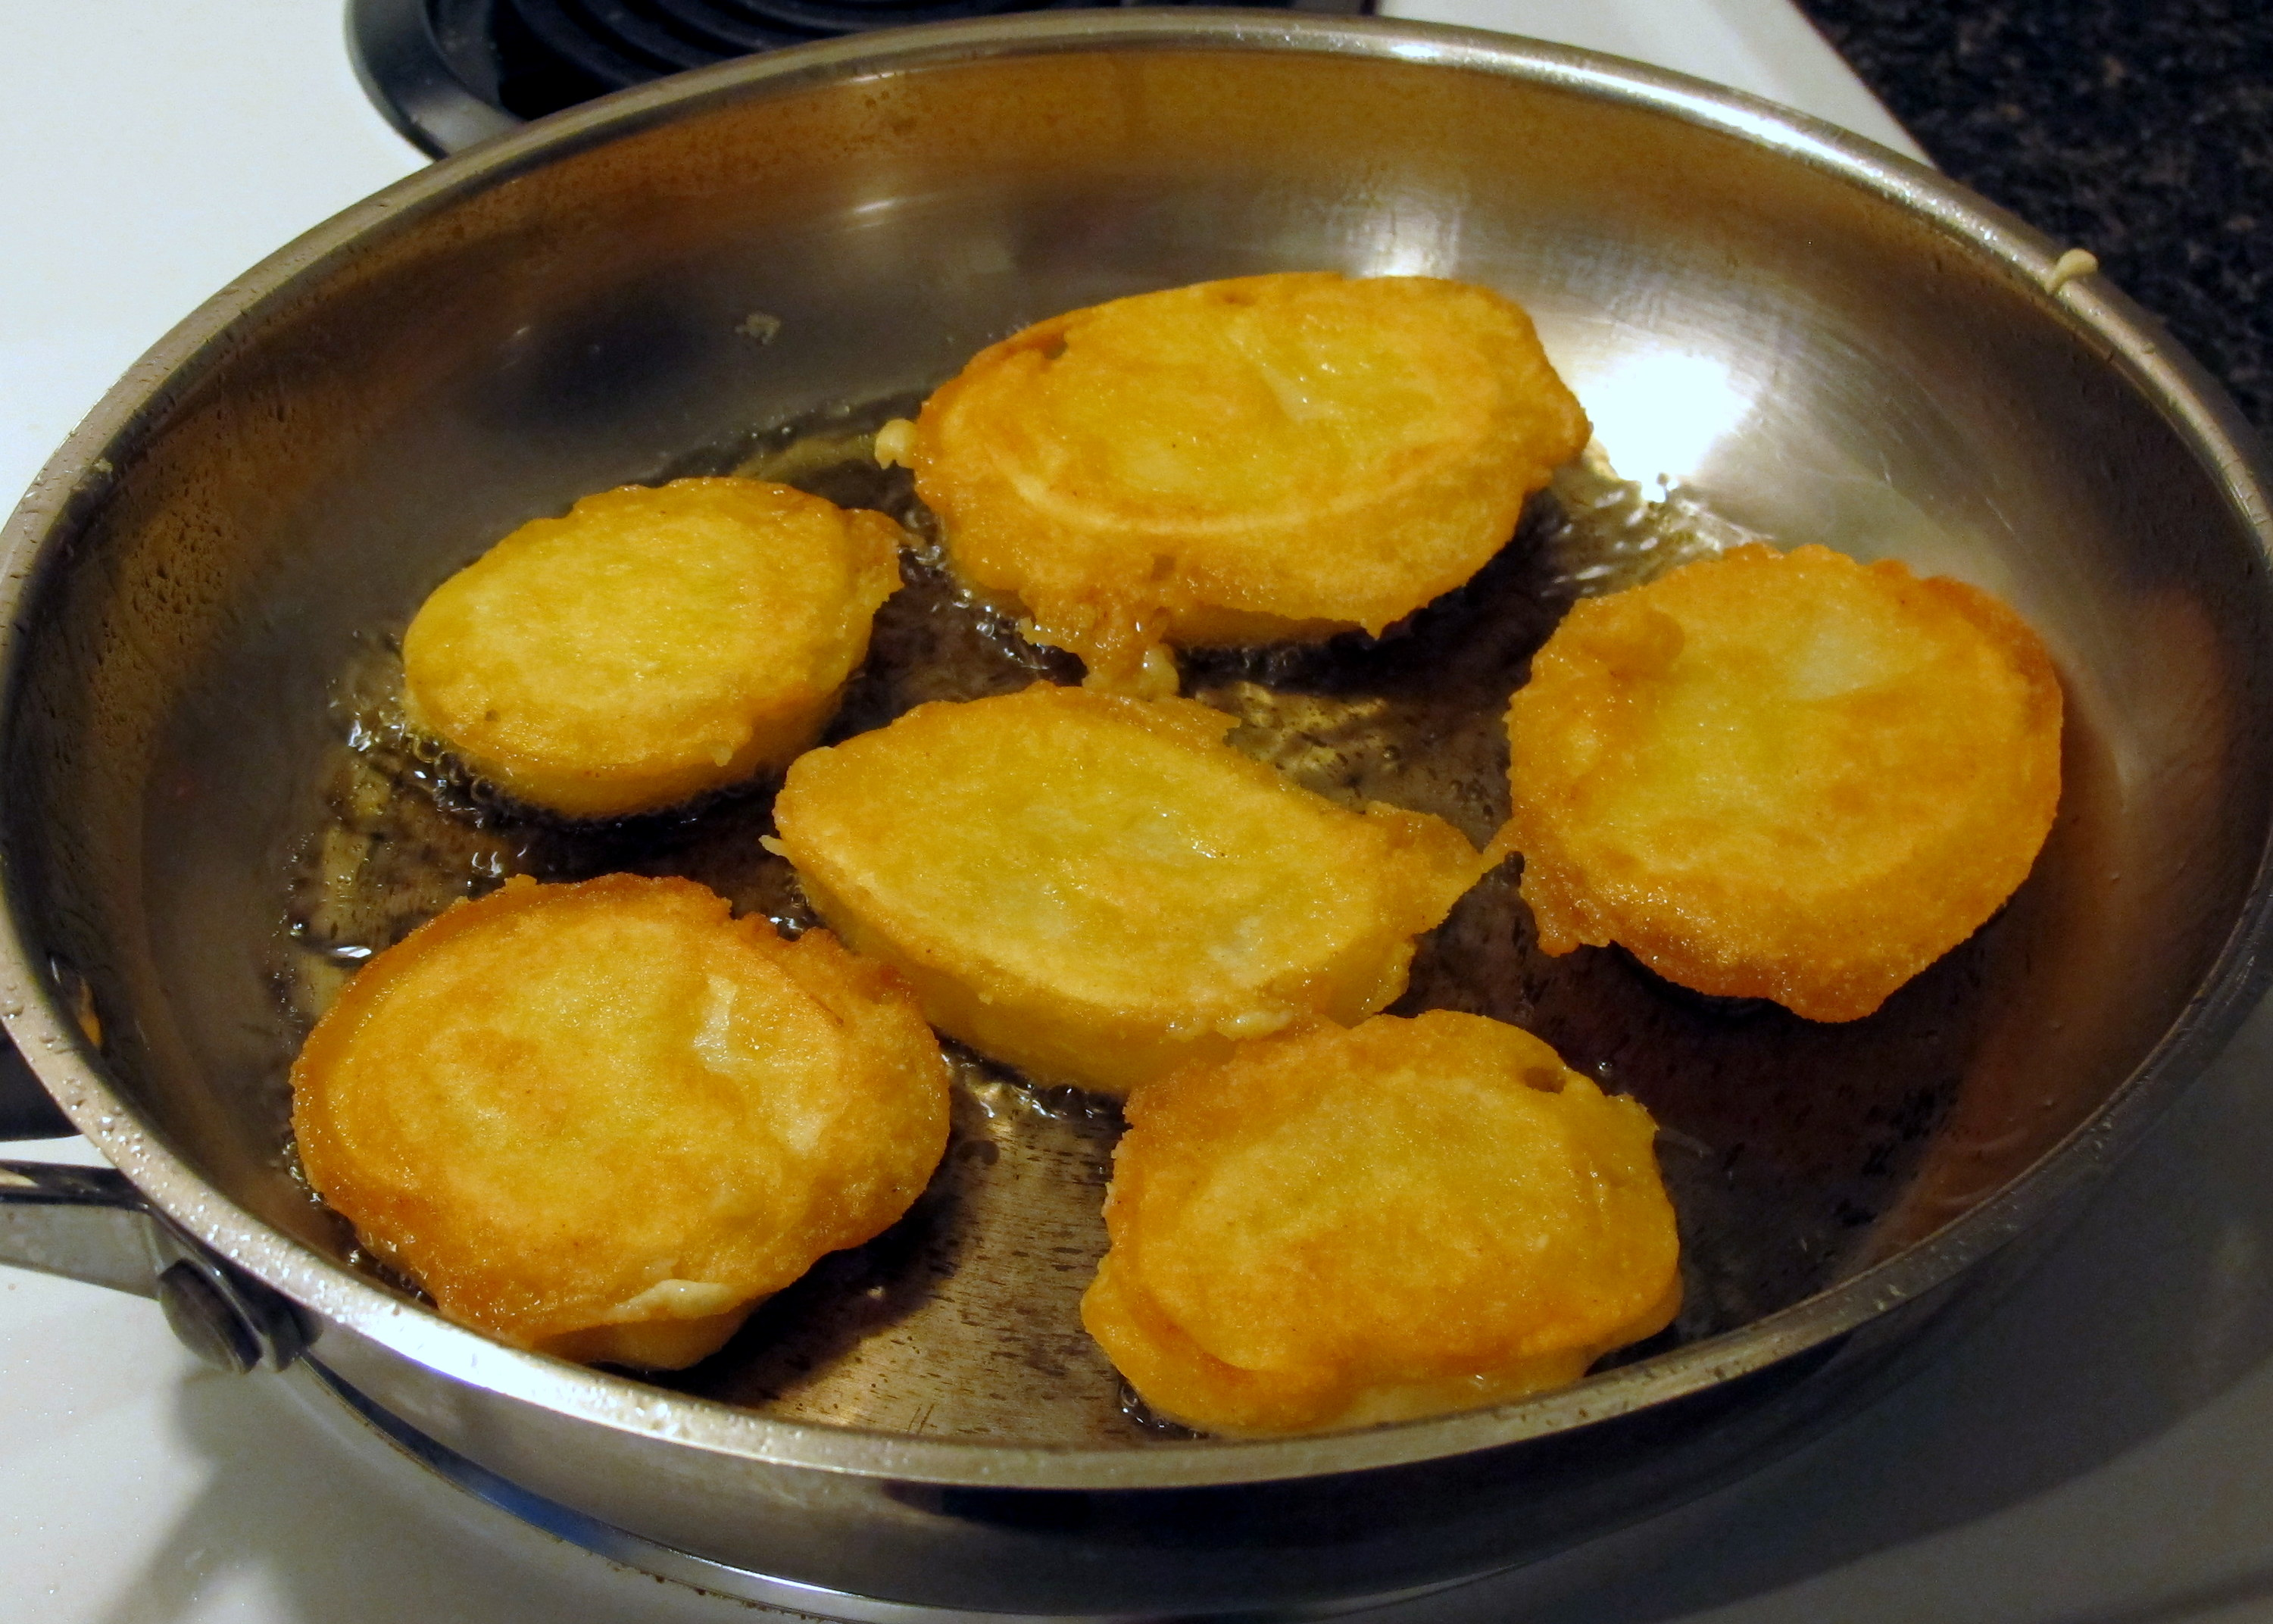 Place The Finished Potato Cakes Onto A Plate Covered With Paper Toweling Or A Cooling Rack Over Paper Toweling If You Have One